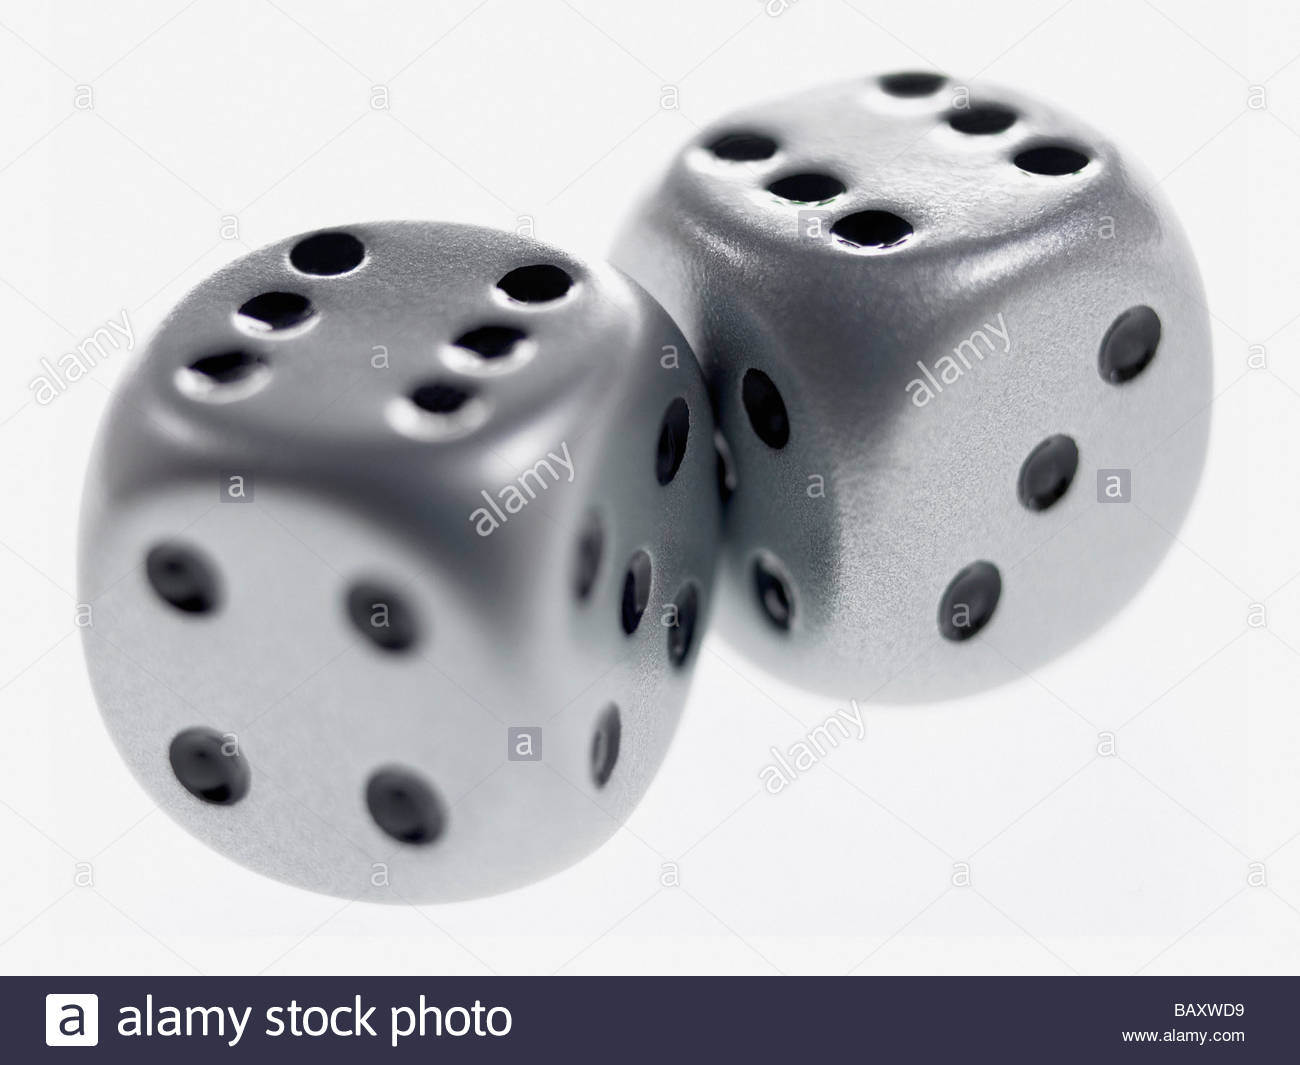 Close up of two dice - Stock Image